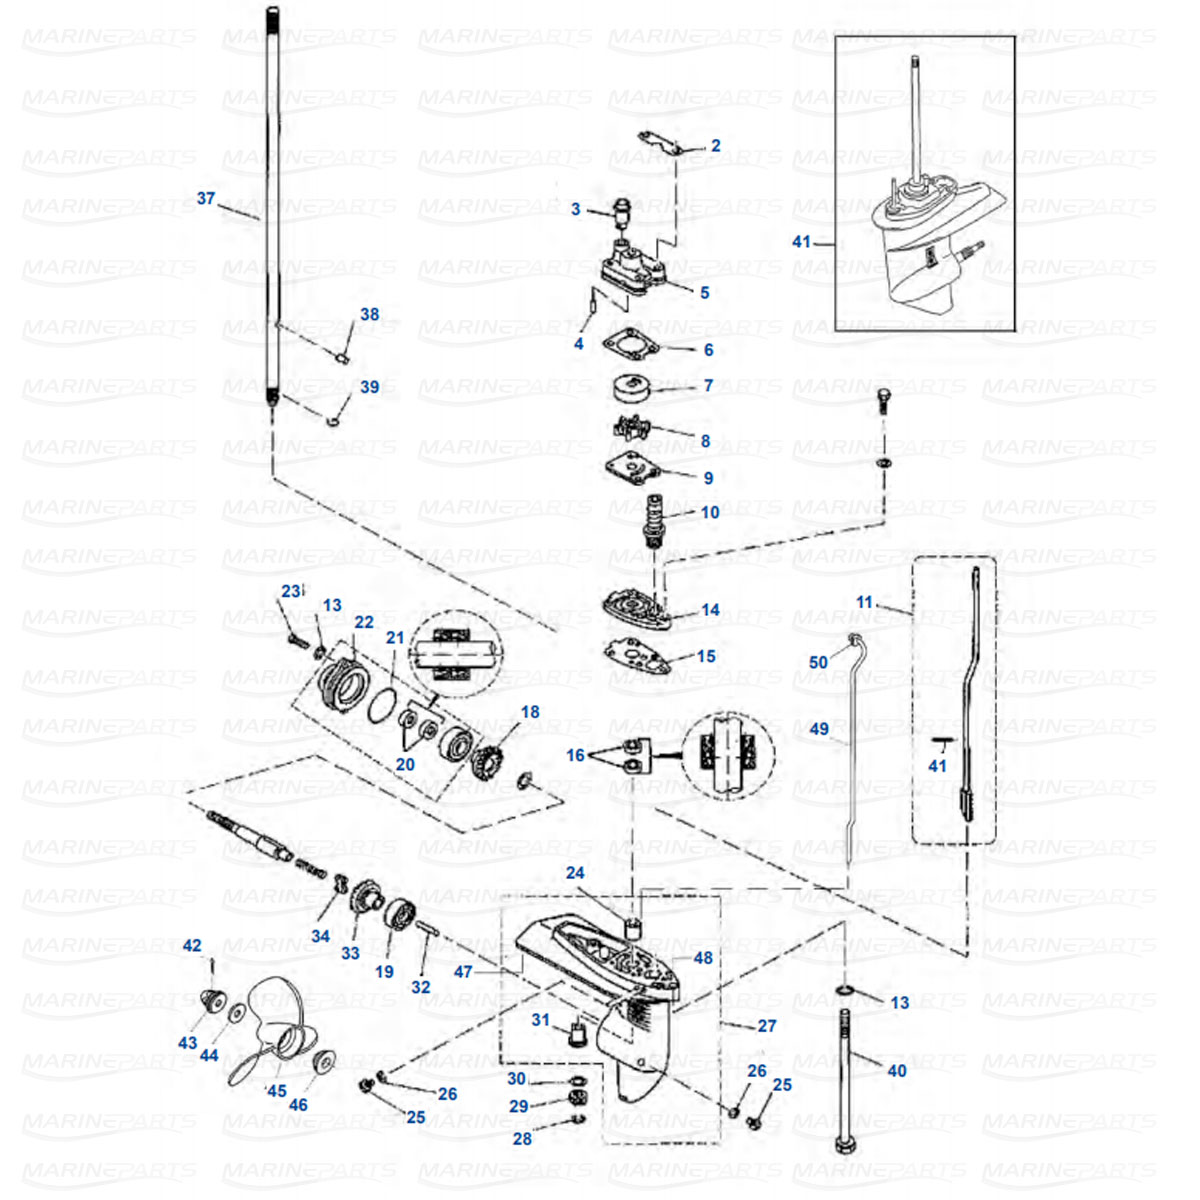 hight resolution of gearcase parts yamaha f4 1998 2009